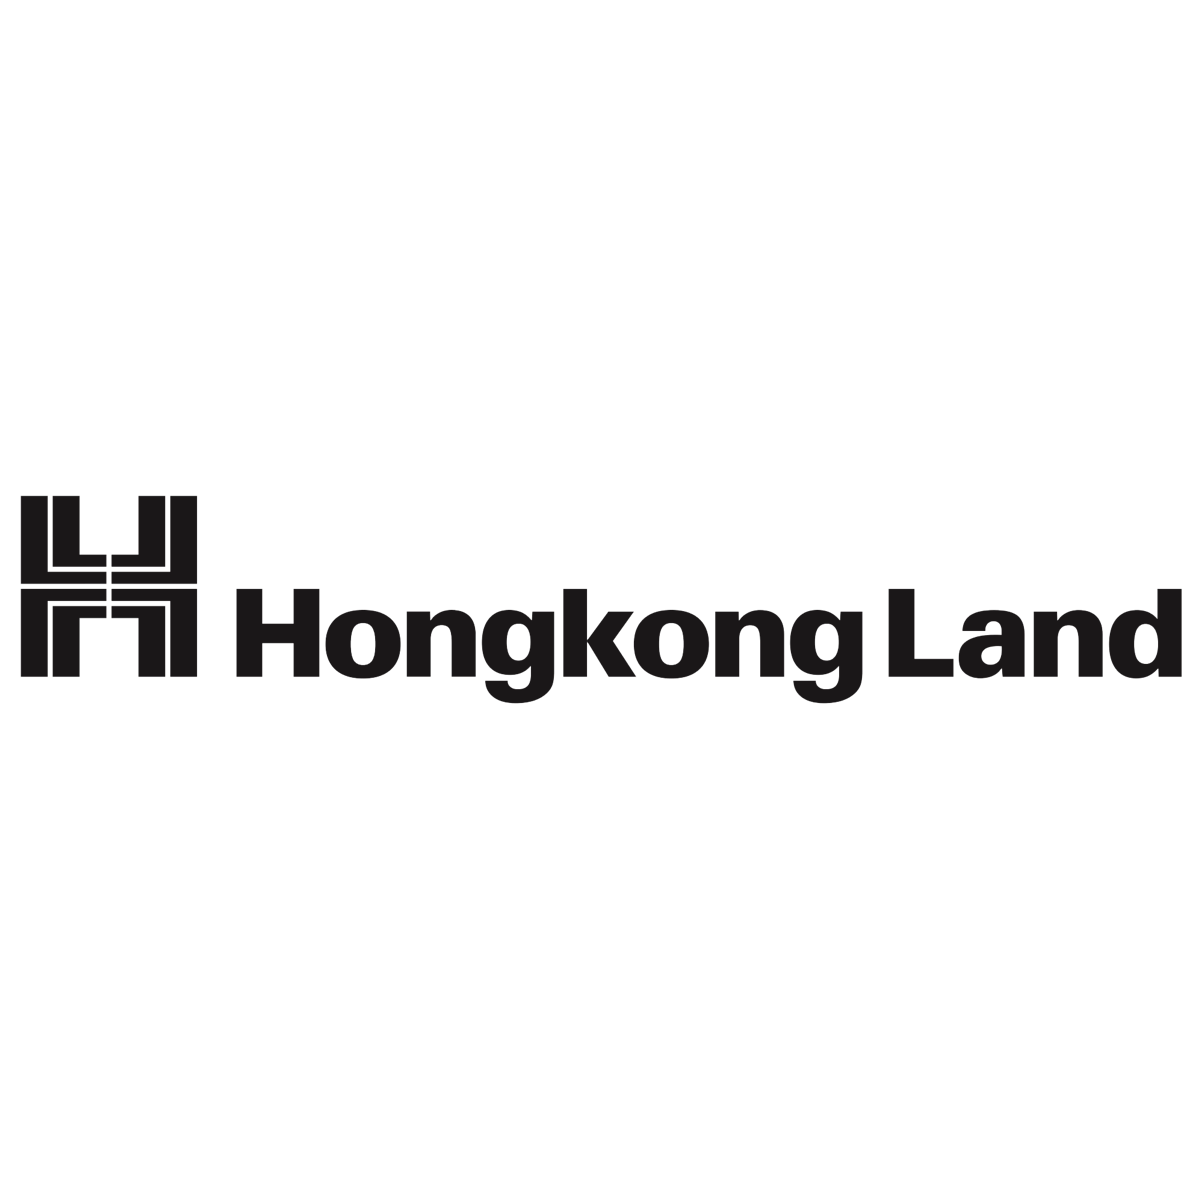 Hongkong Land (HKL SP) - DBS Vickers 2017-08-02: 1H17 Result Preview